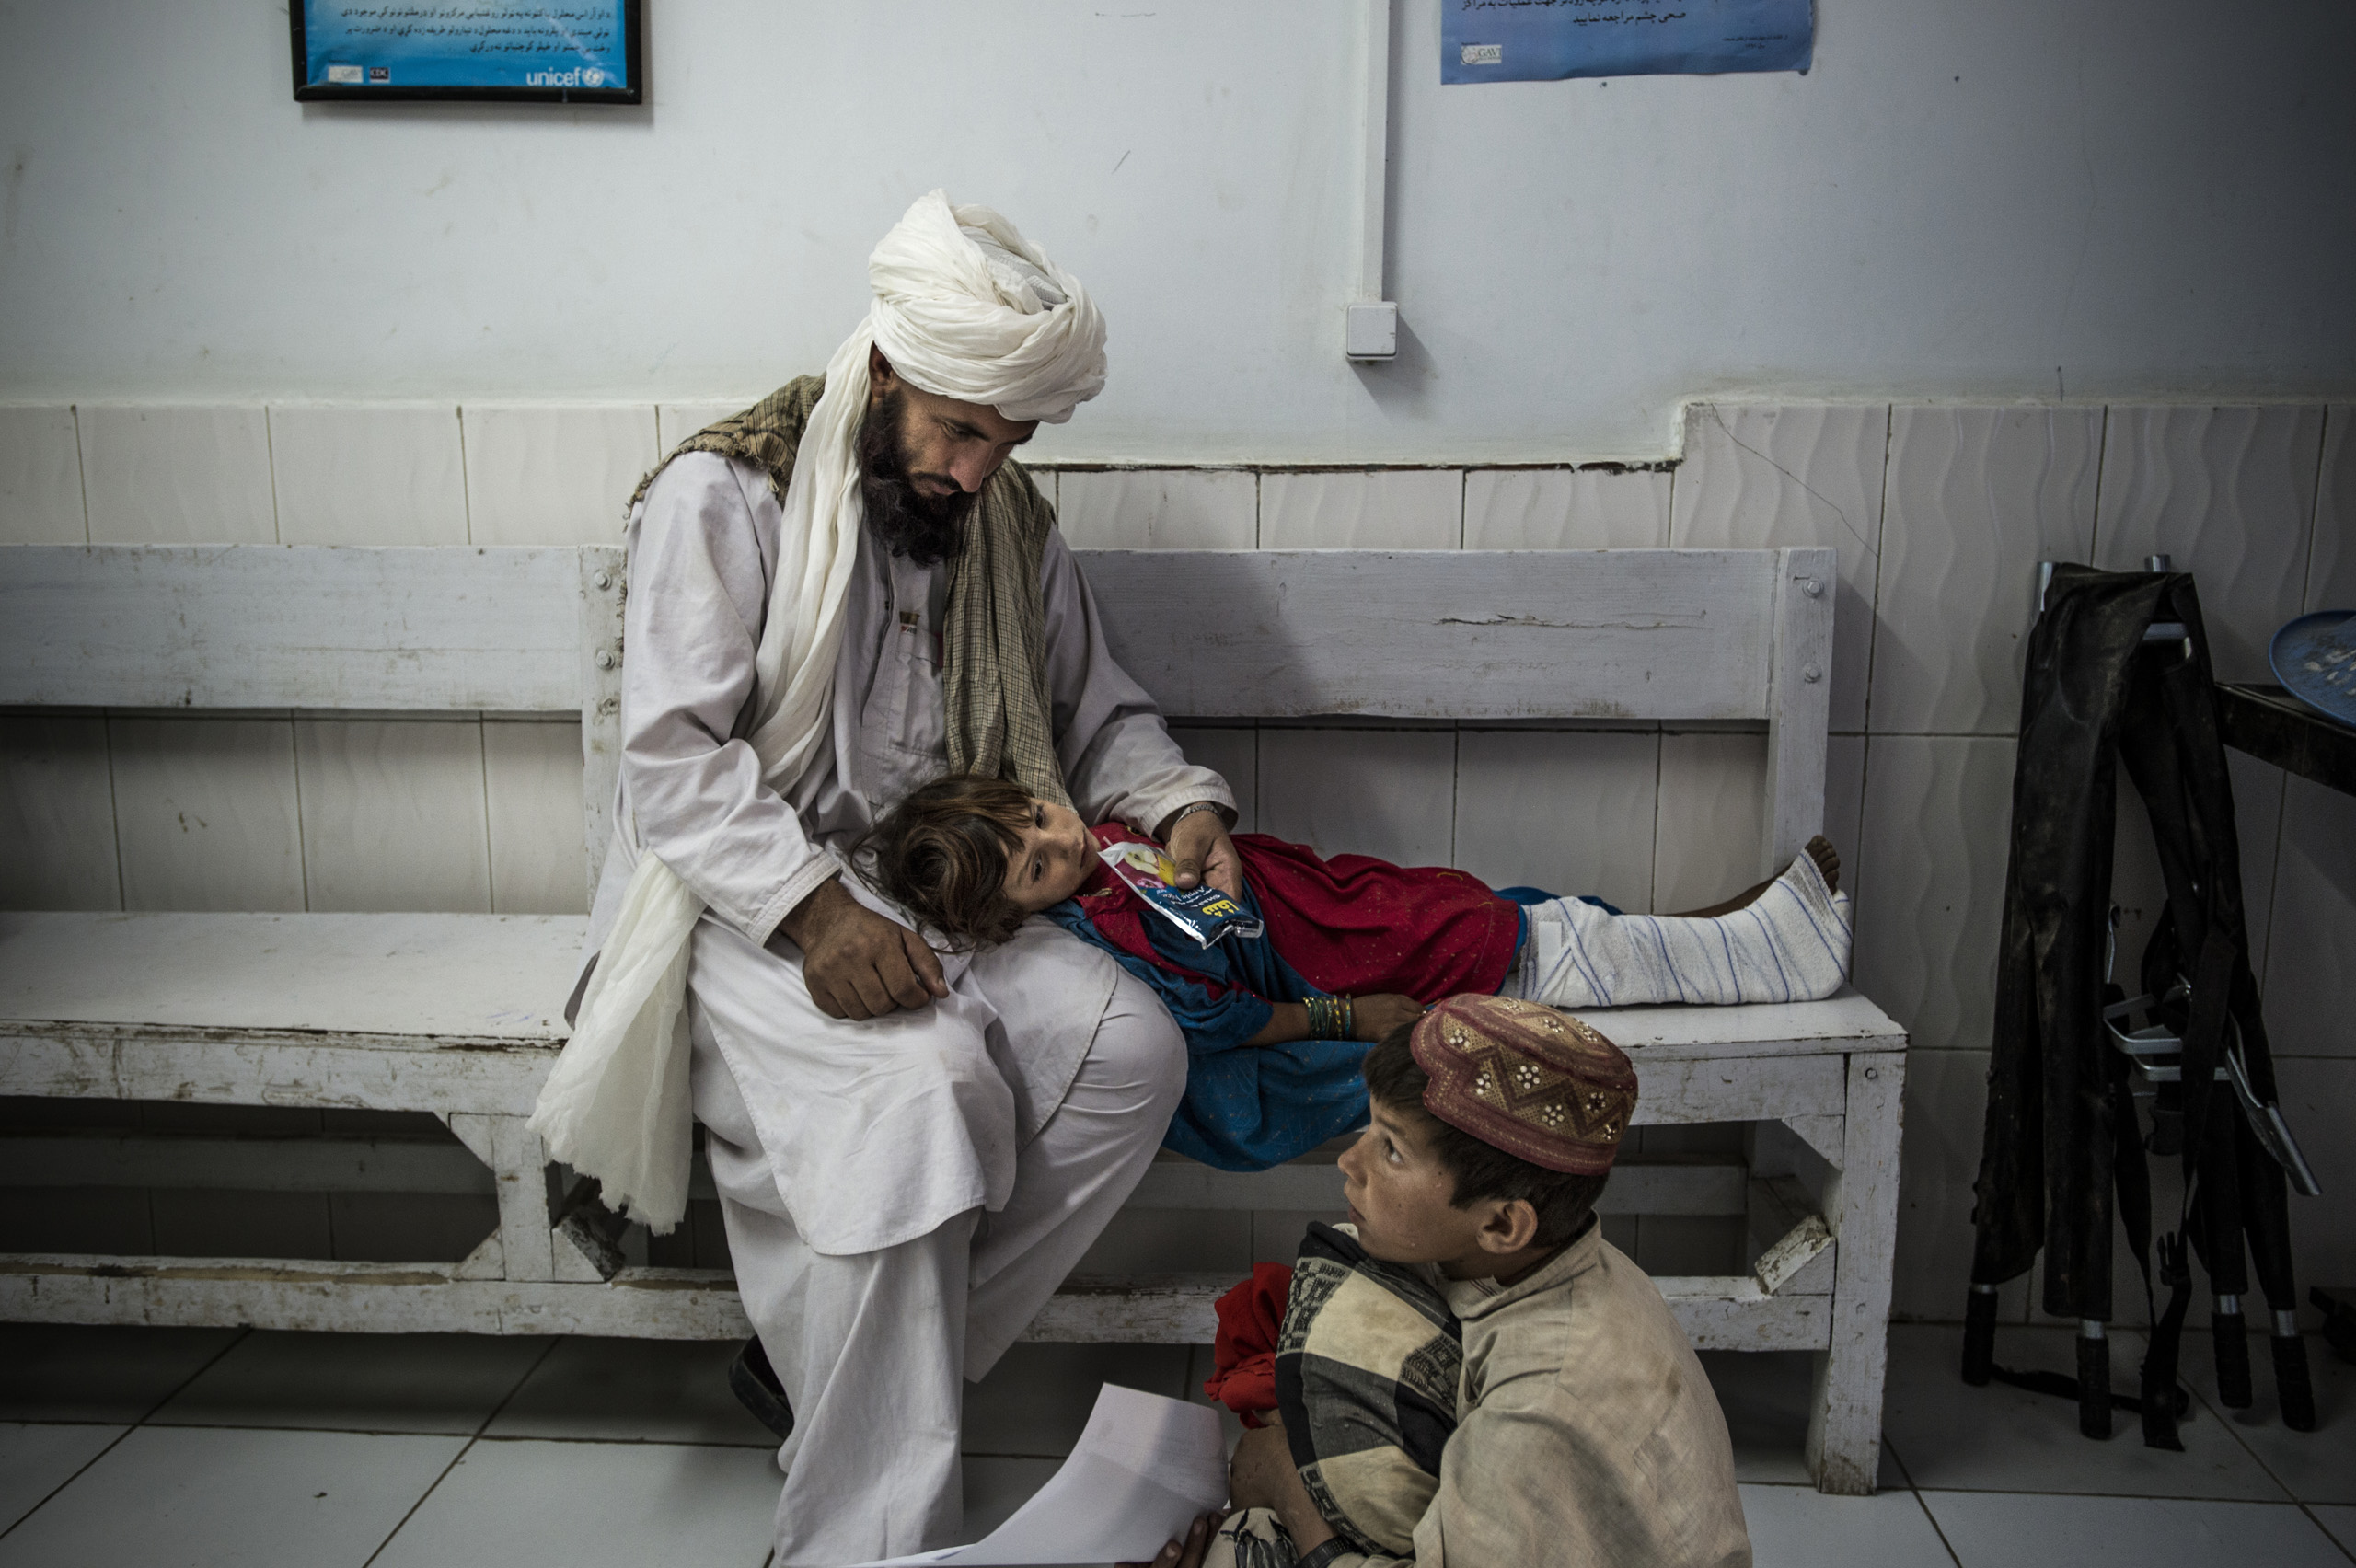 5-year-old Rona, who has a broken leg, sits next to her father Haj Bgul and brother  in the emergency room at the Boost hospital run by Doctors Without Borders, Lashkar Gah, Helmand, Afghanistan,  June 2016